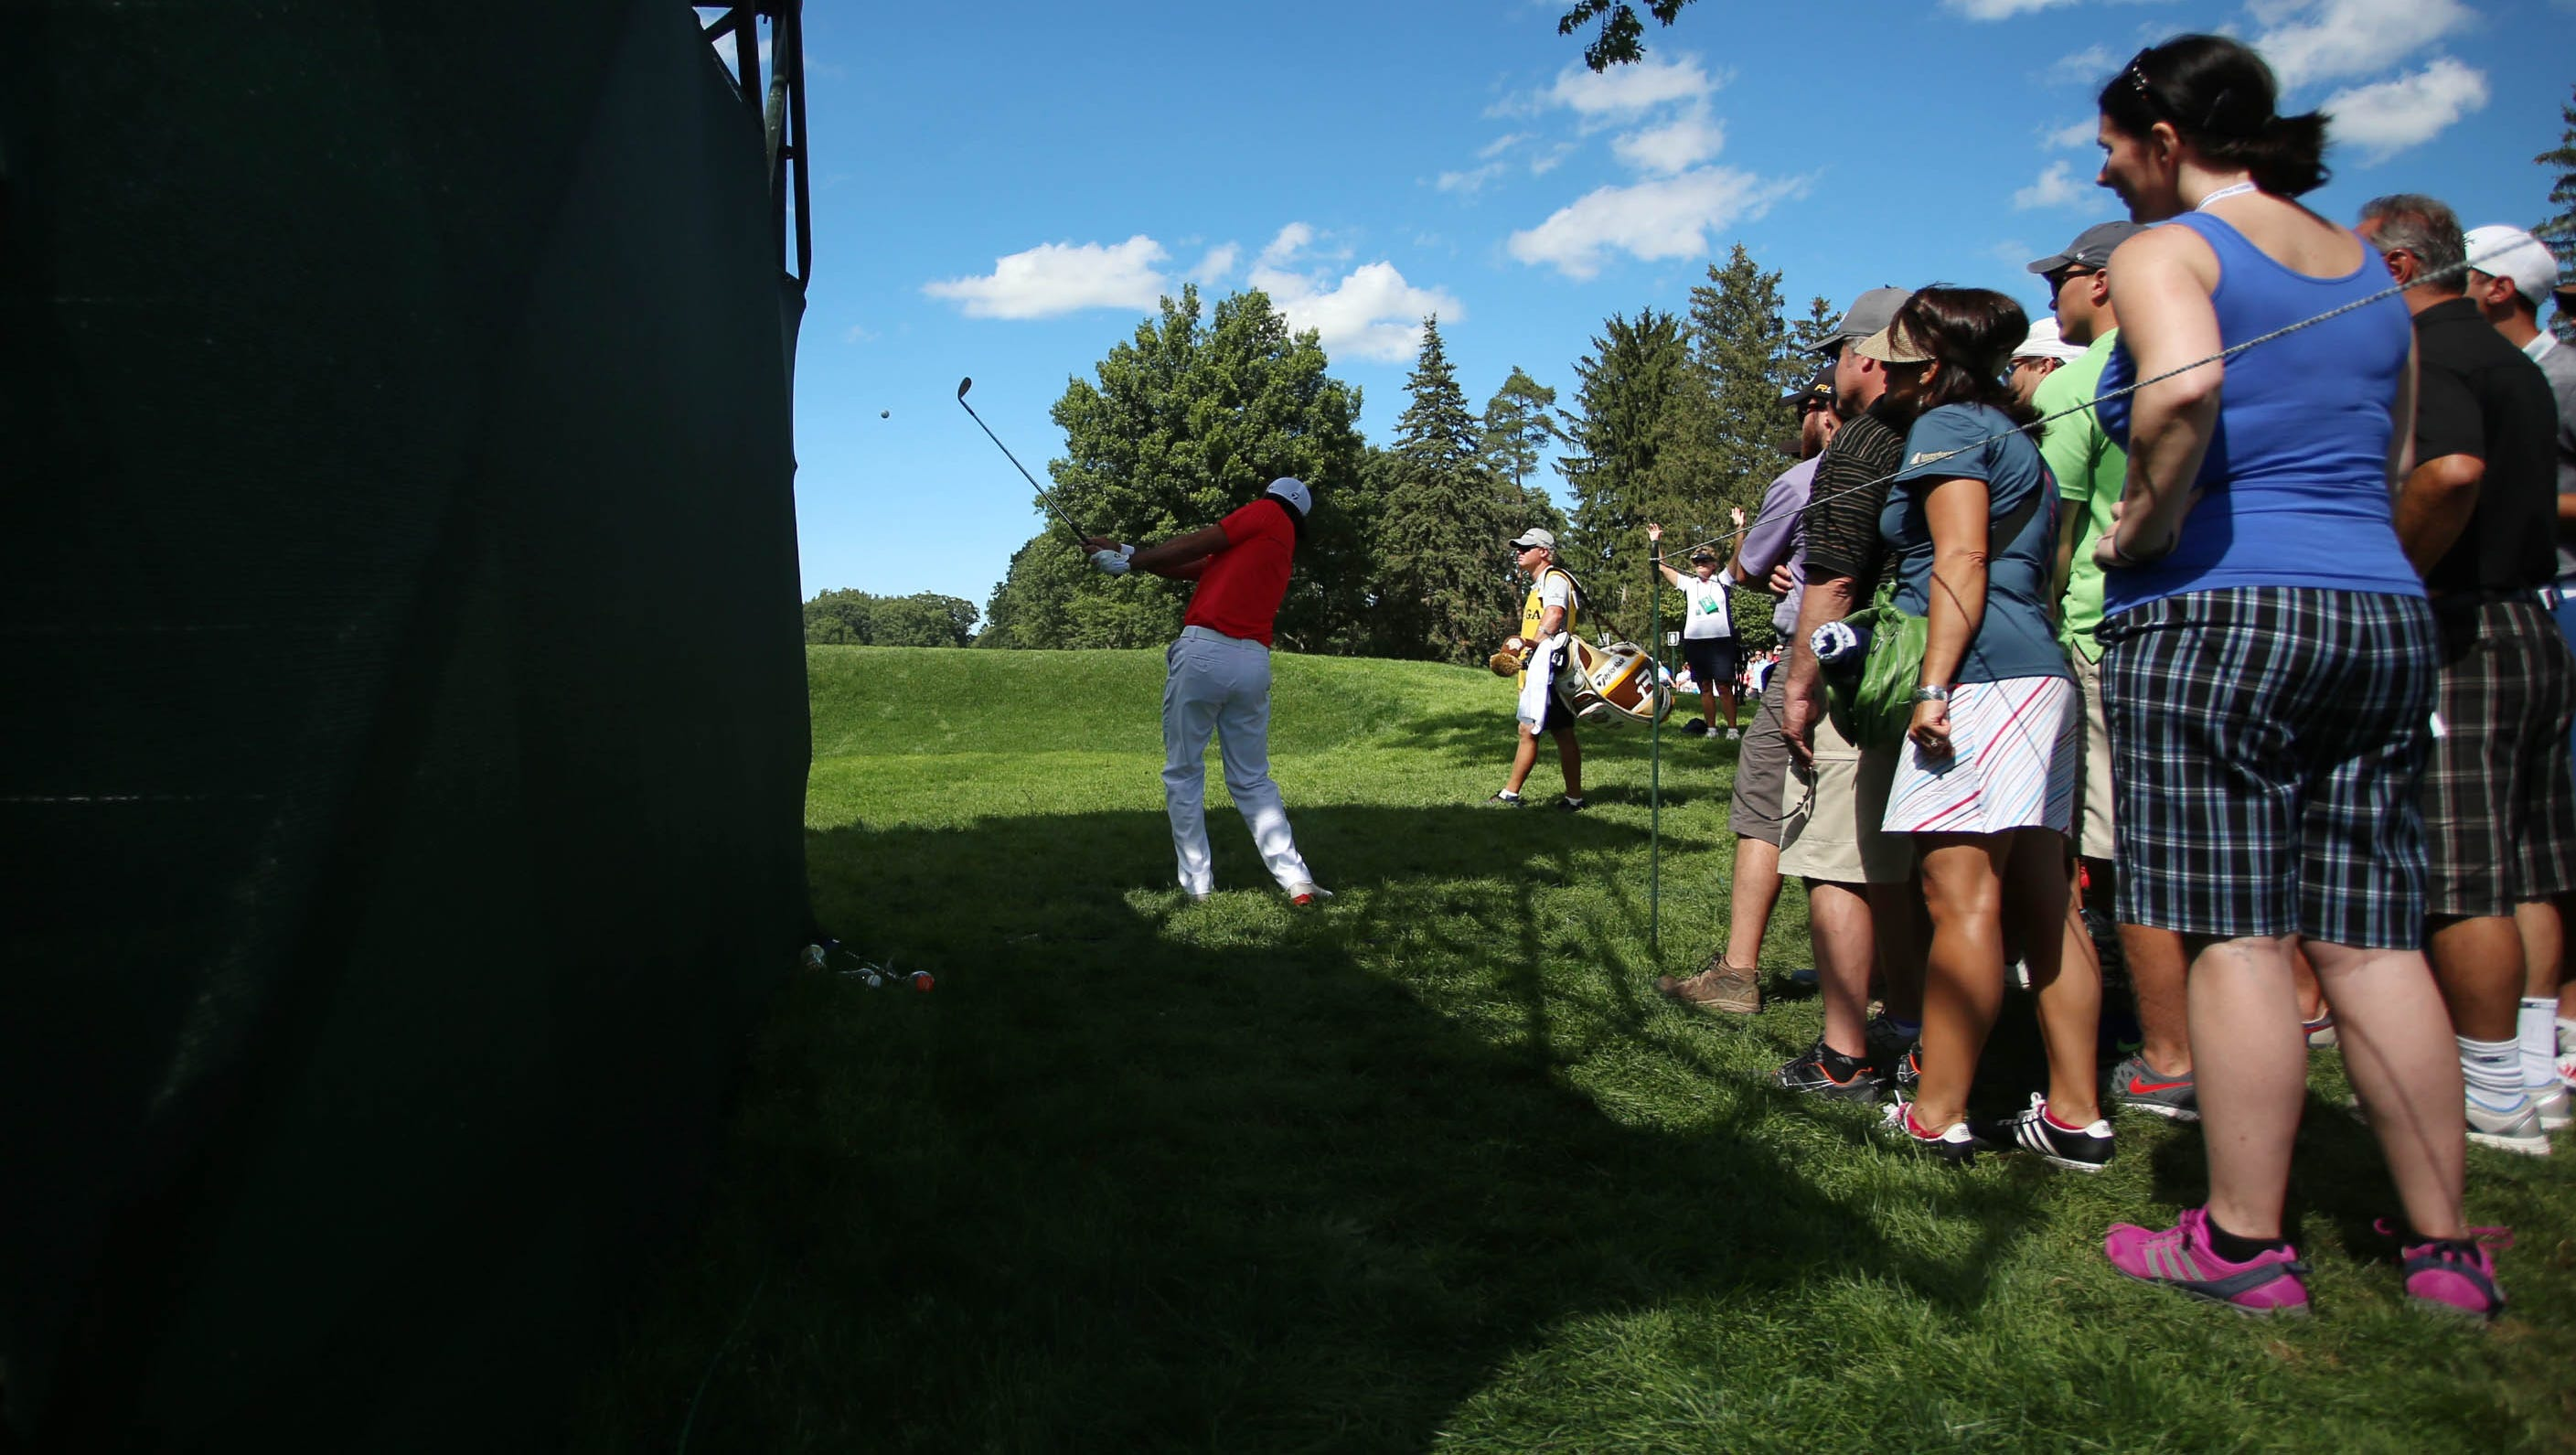 Jason Day plays from the rough near the grandstands on No. 8.